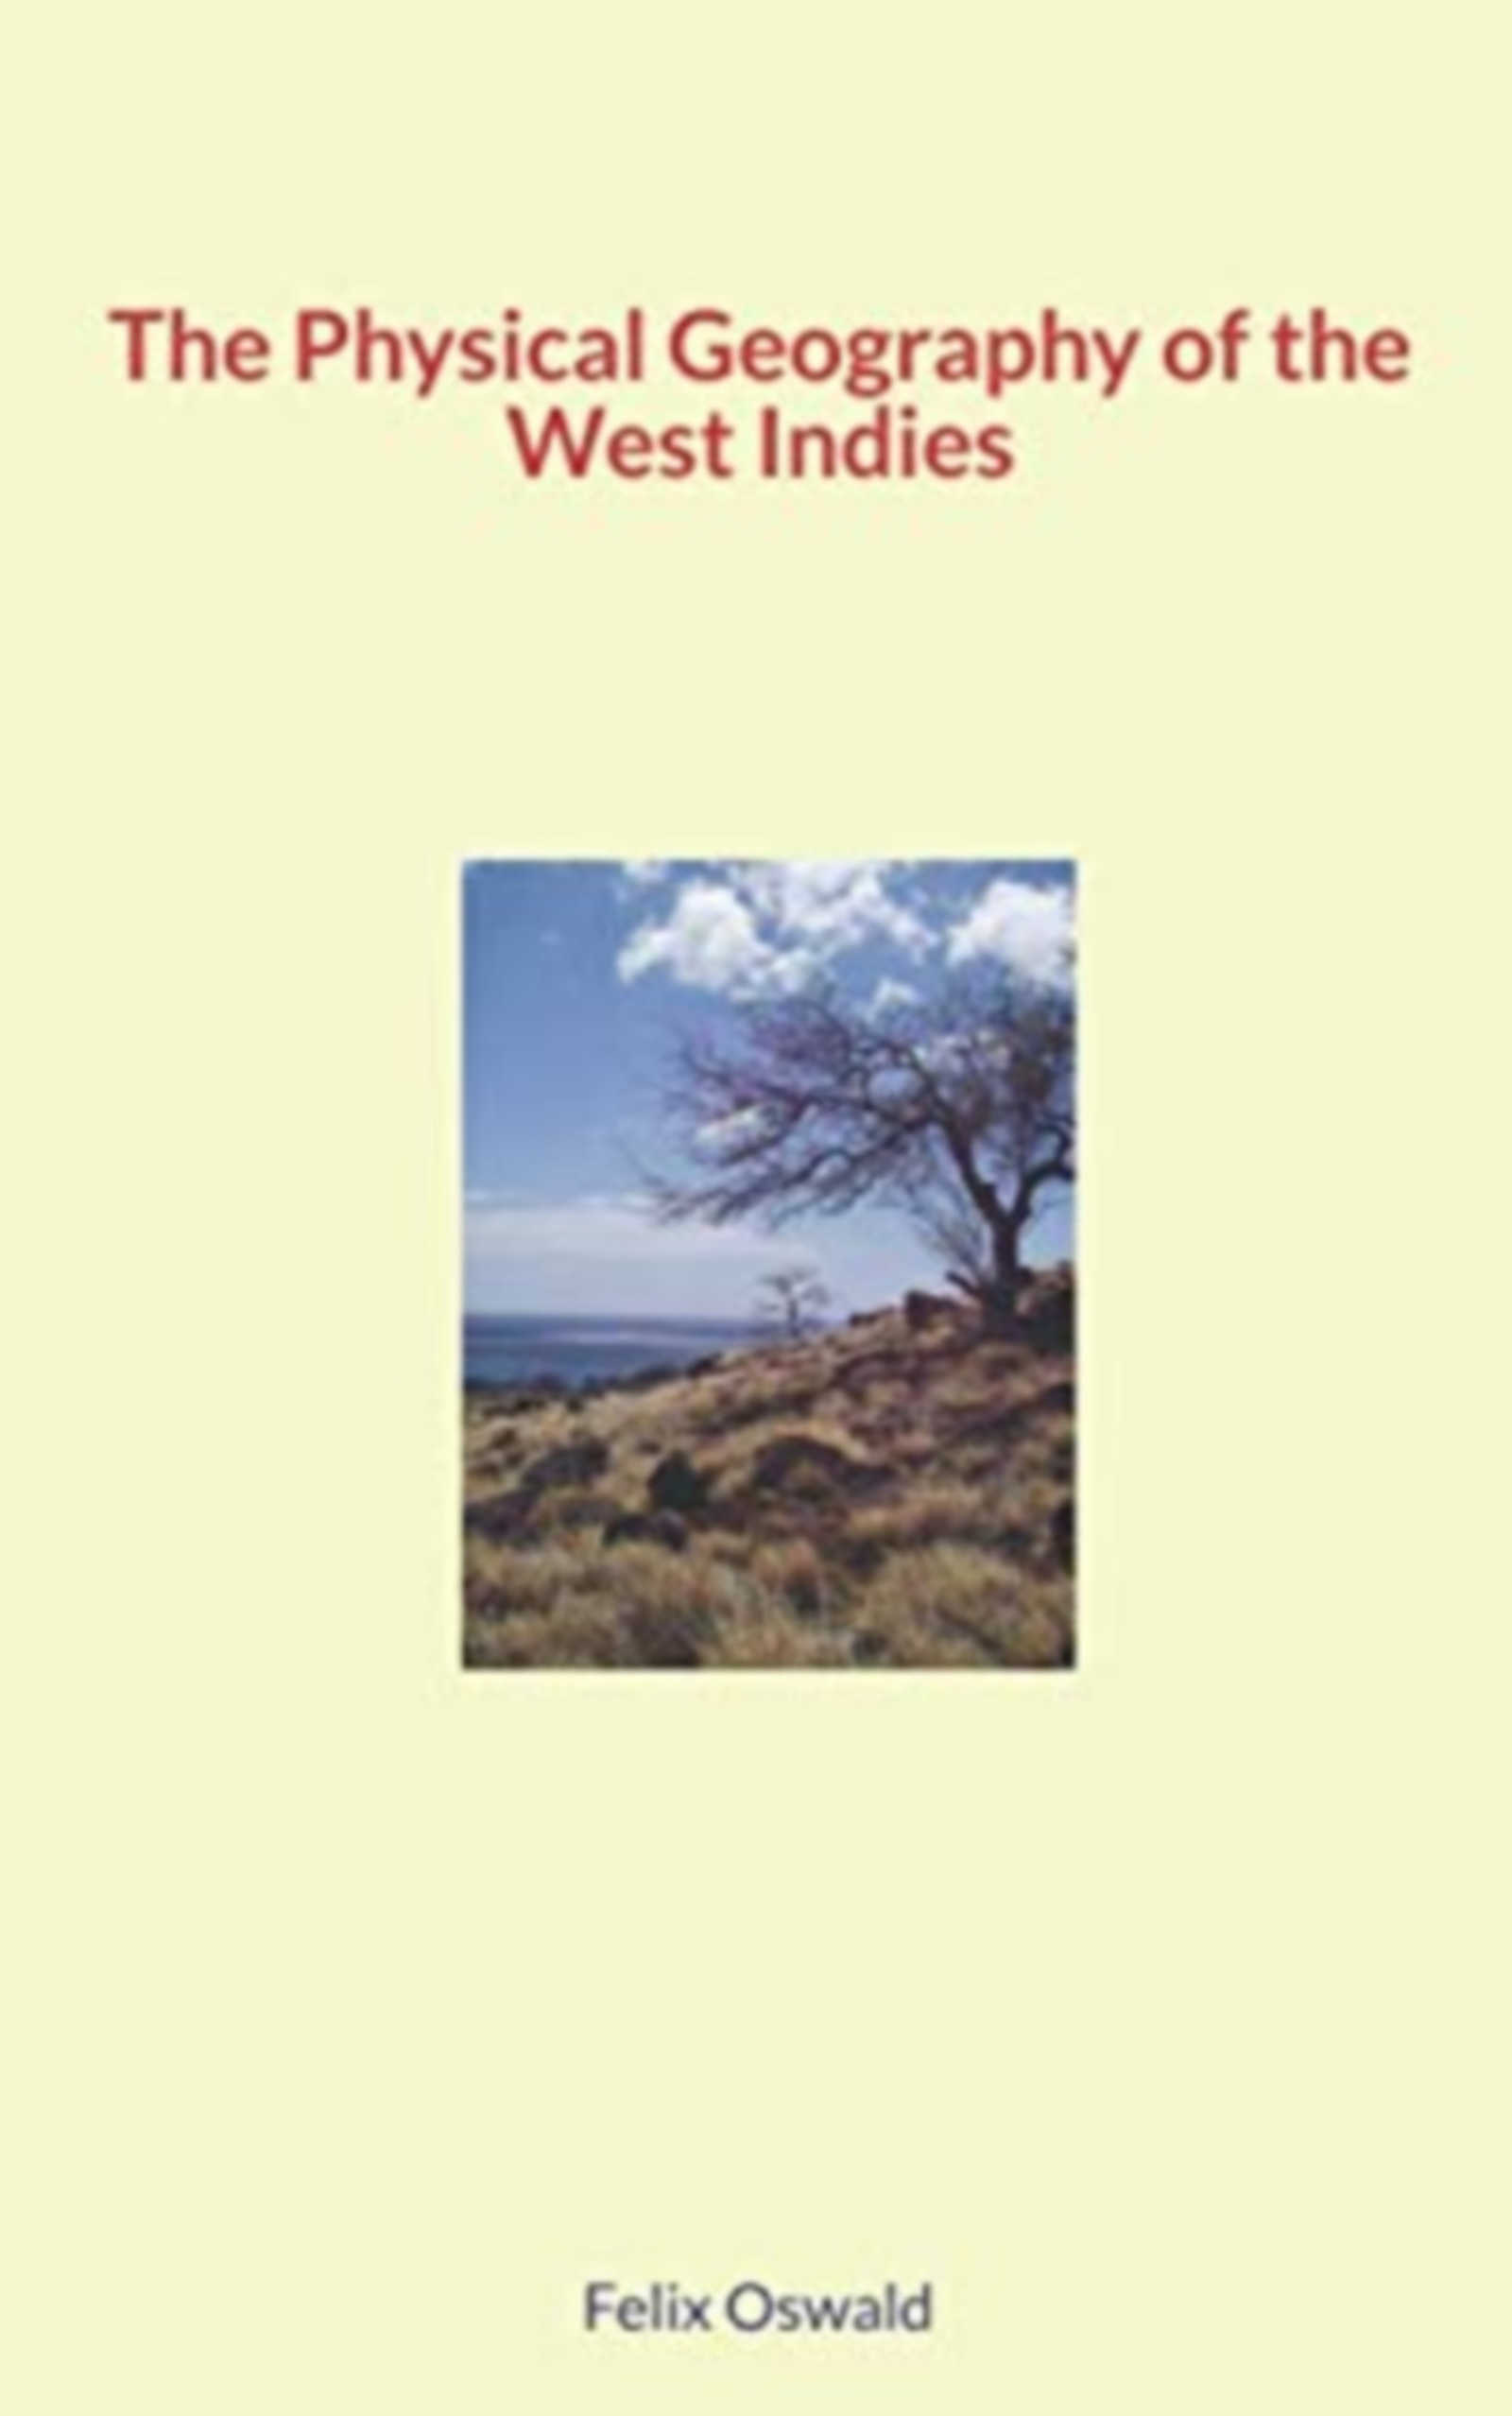 The Physical Geography of the West Indies